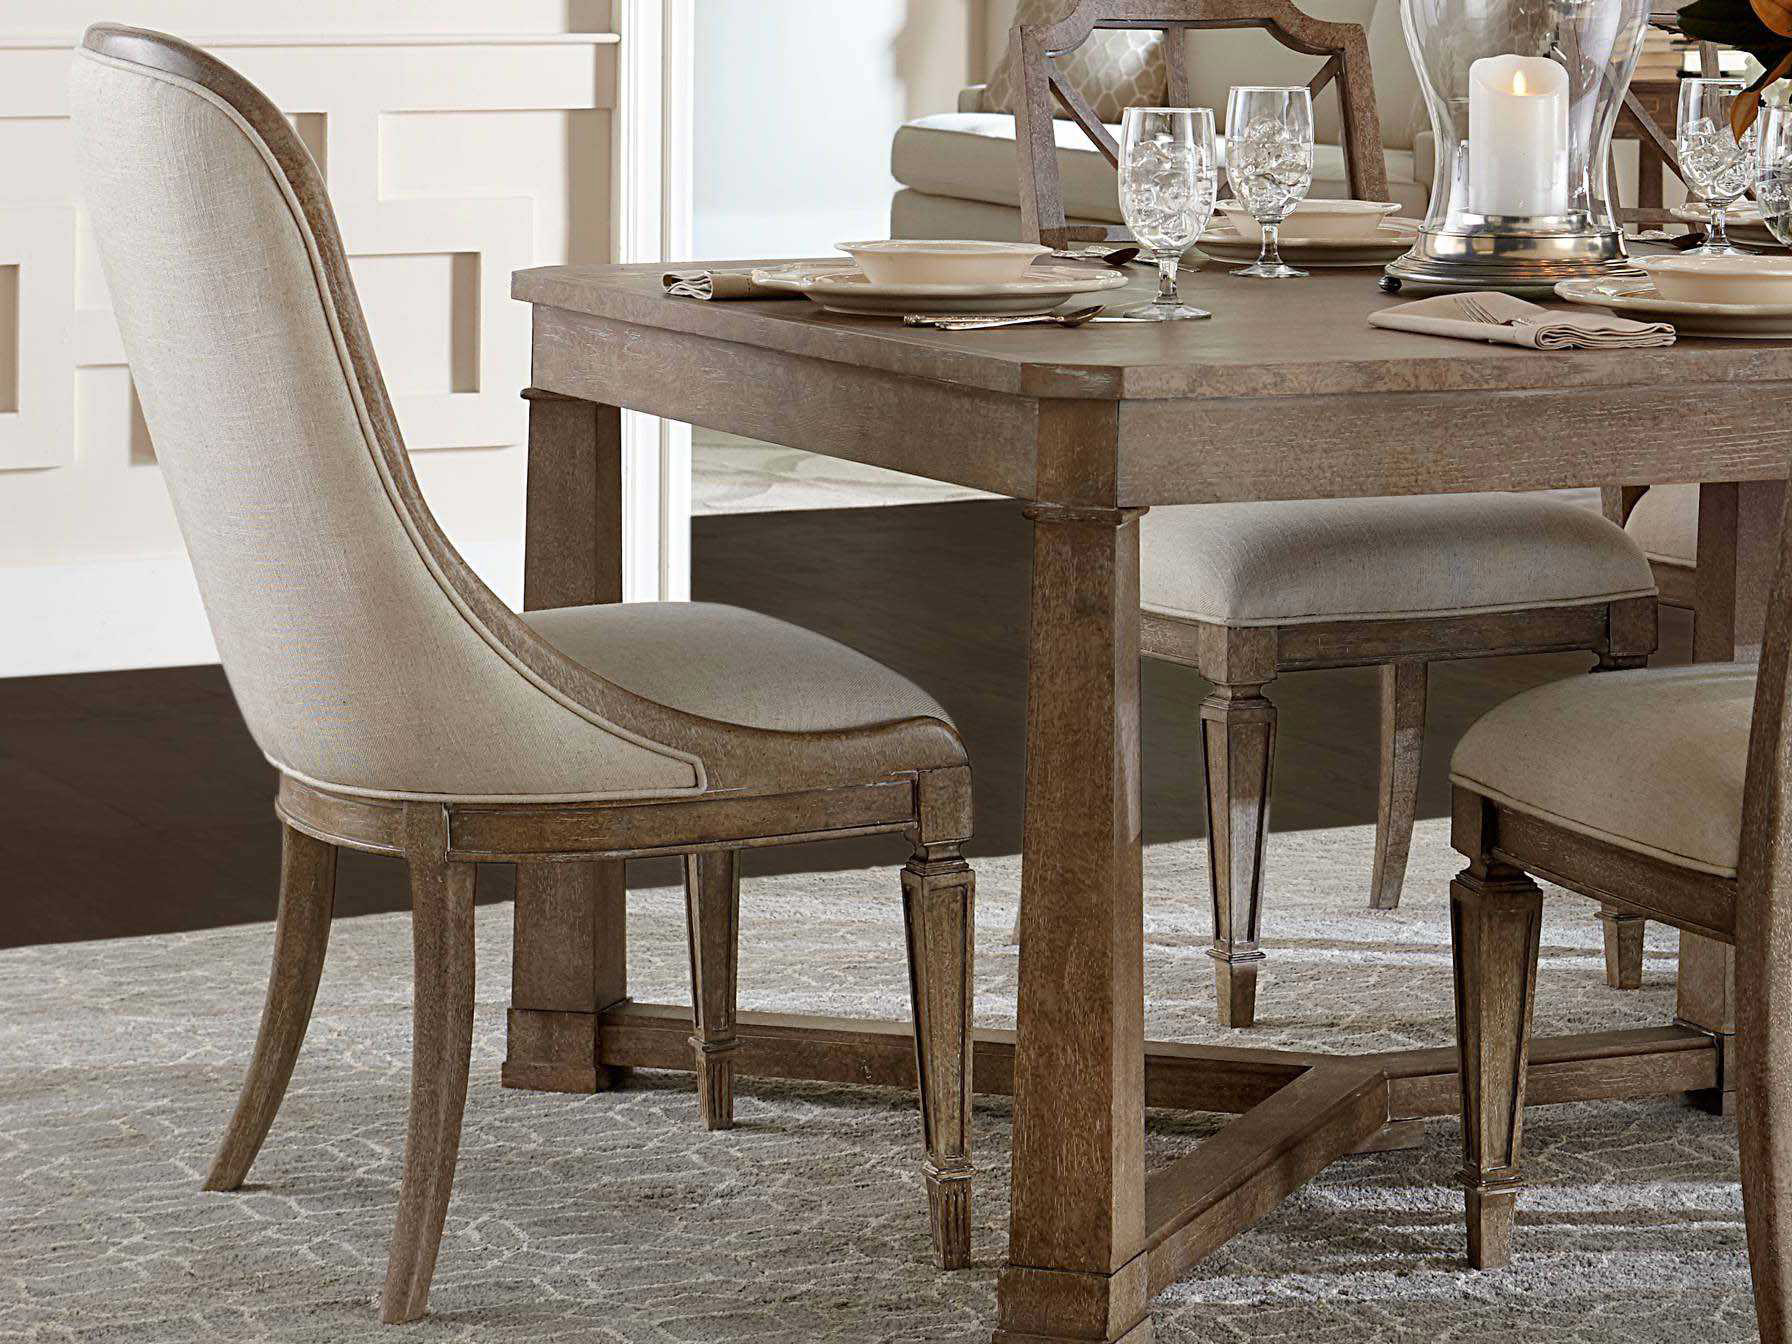 Stanley furniture wethersfield estate dining room set for Stanley furniture dining room sets